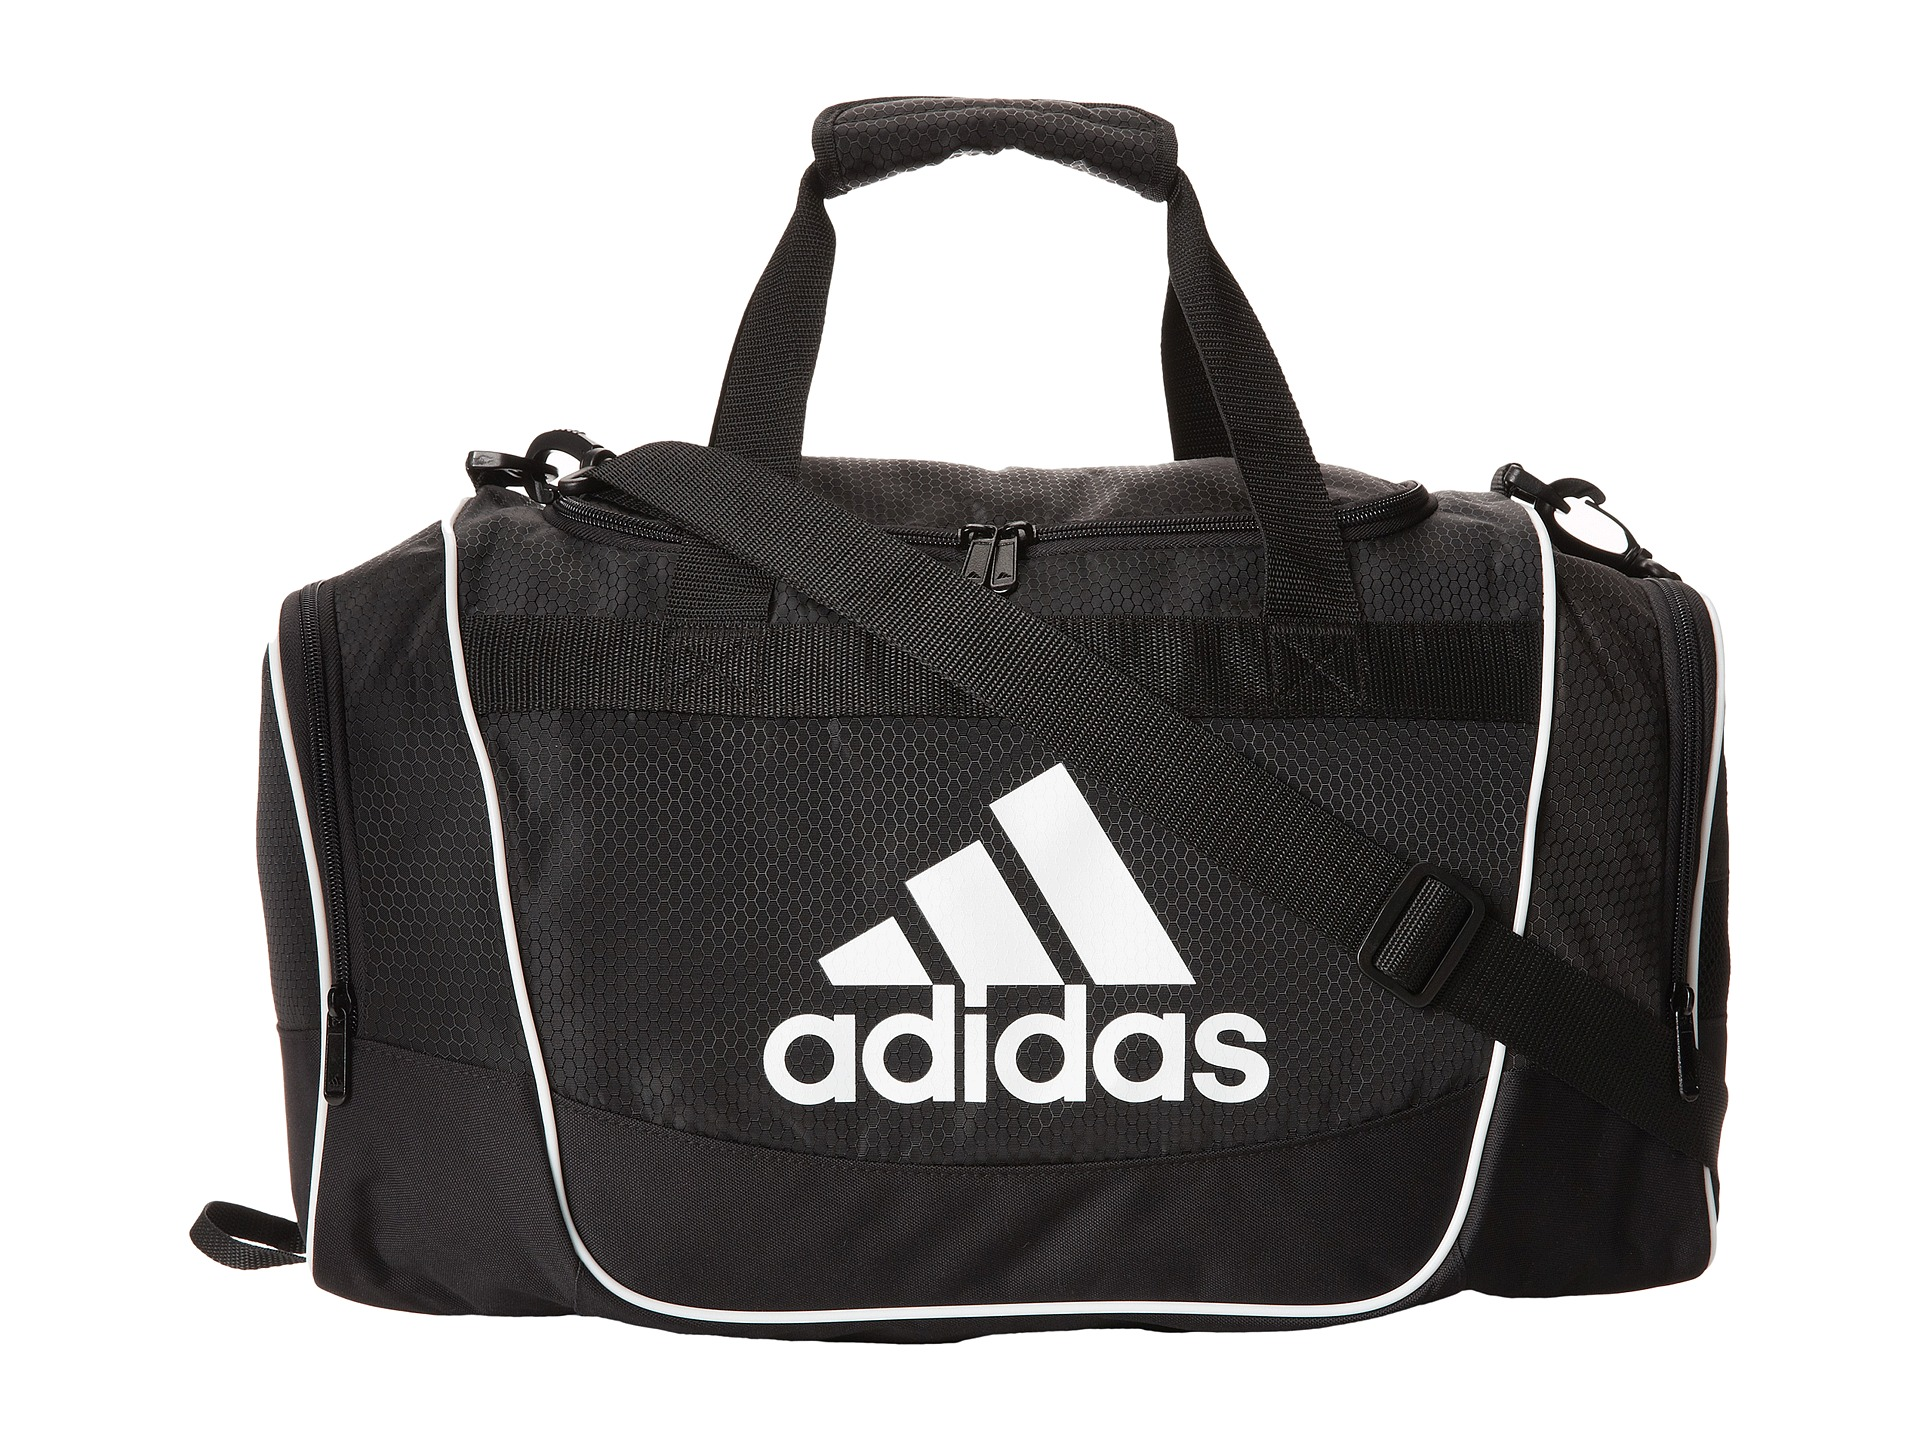 cc040ebae2 cheap adidas duffel bags,adidas dragon pink > OFF52% Originals Shoes ...